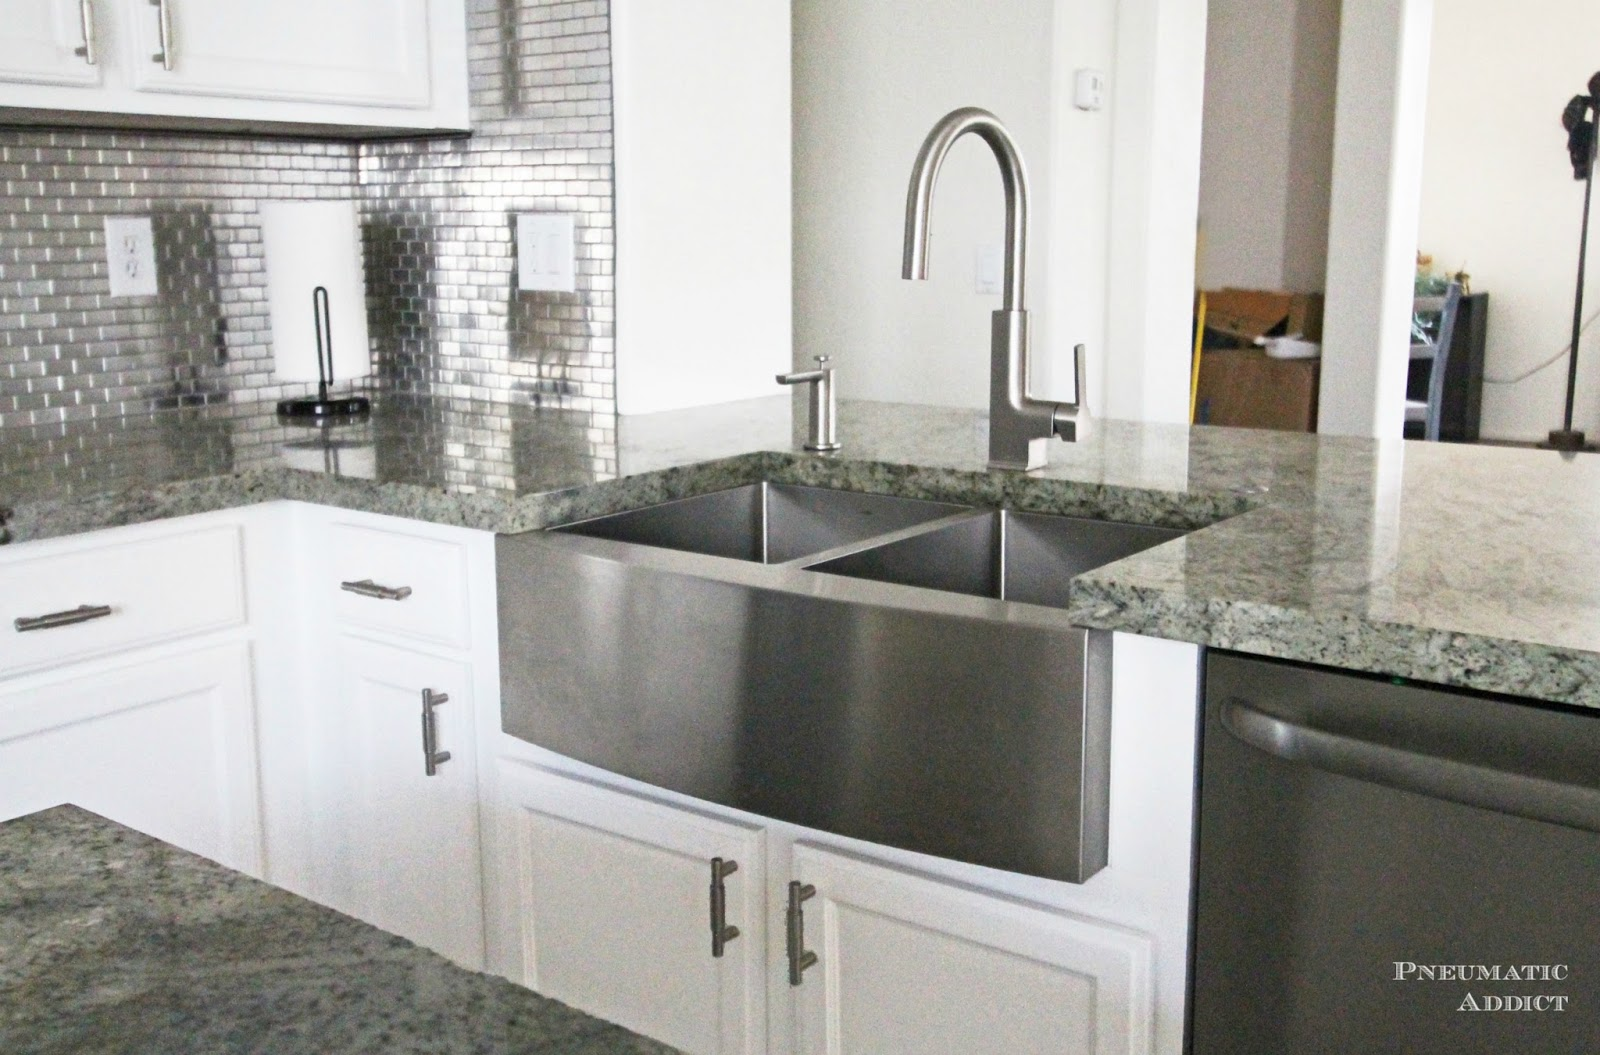 How to Install an Apron Sink in a Stock Cabinet ...